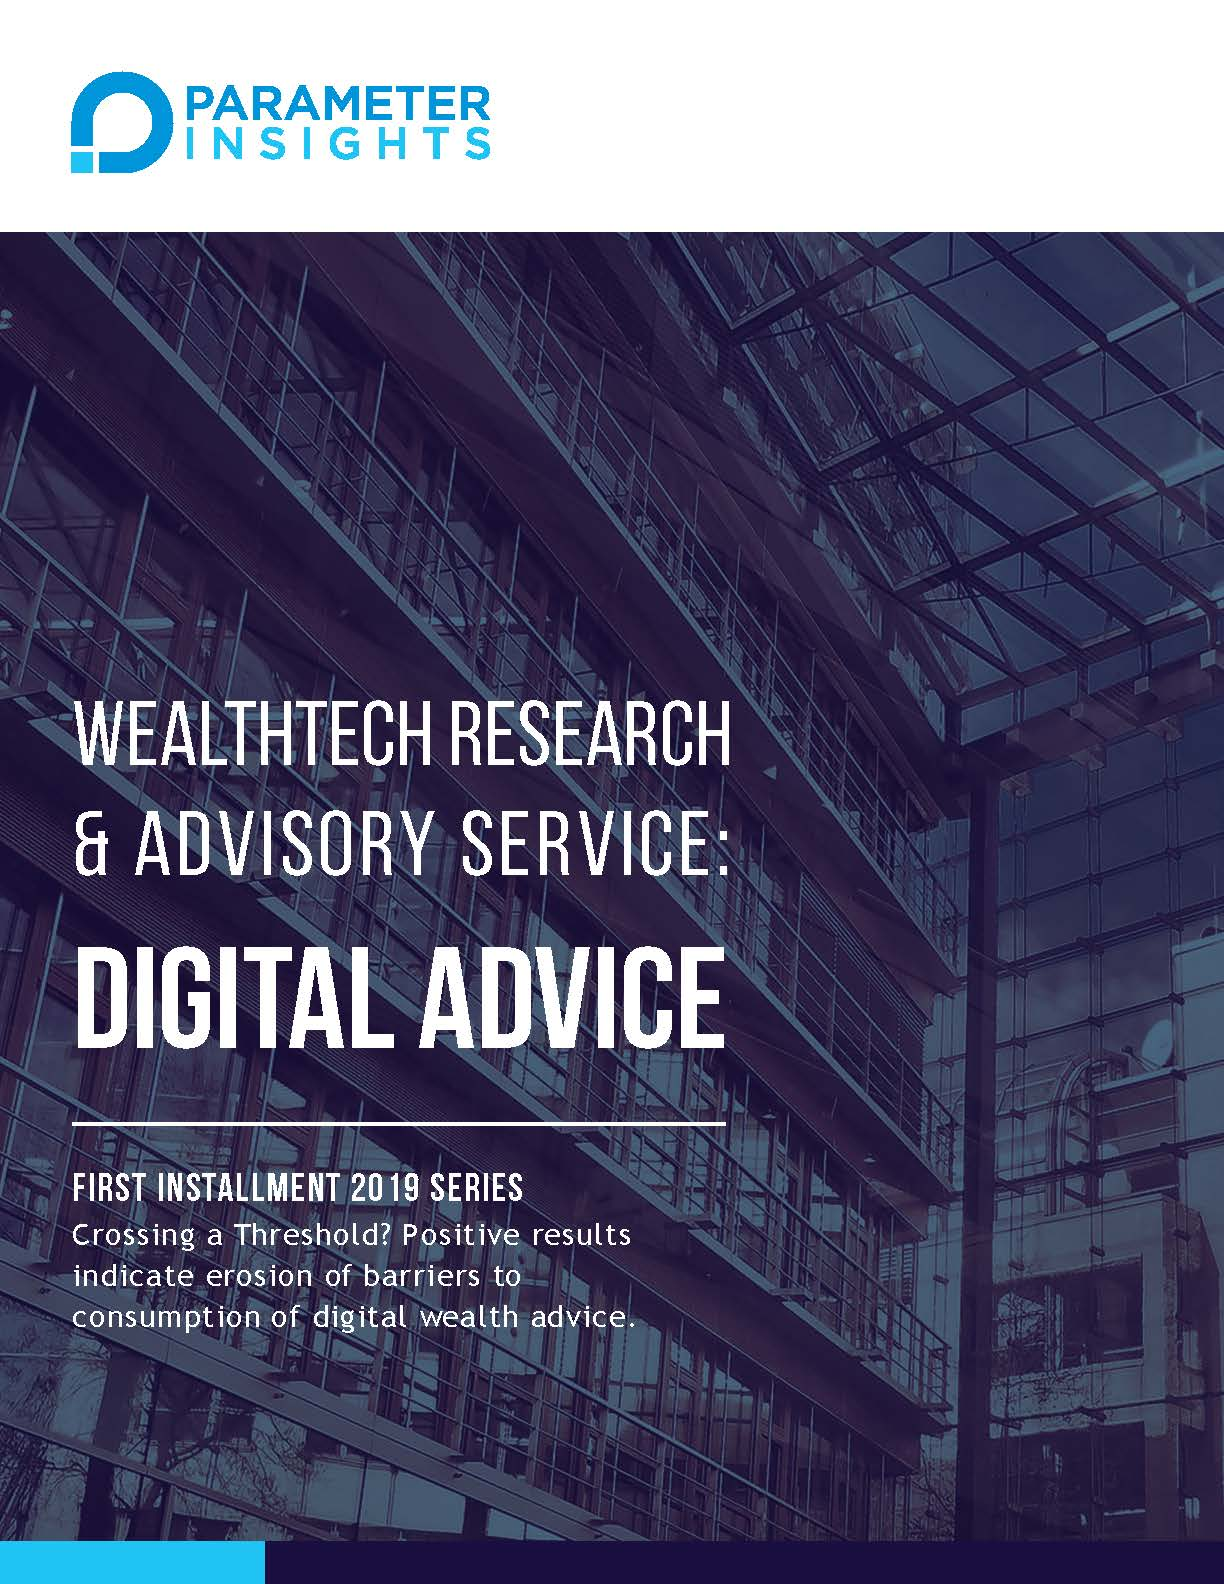 ParameterInsights 2019 Digital Wealth Advice Research Edition 1 Master_Page_01.jpg